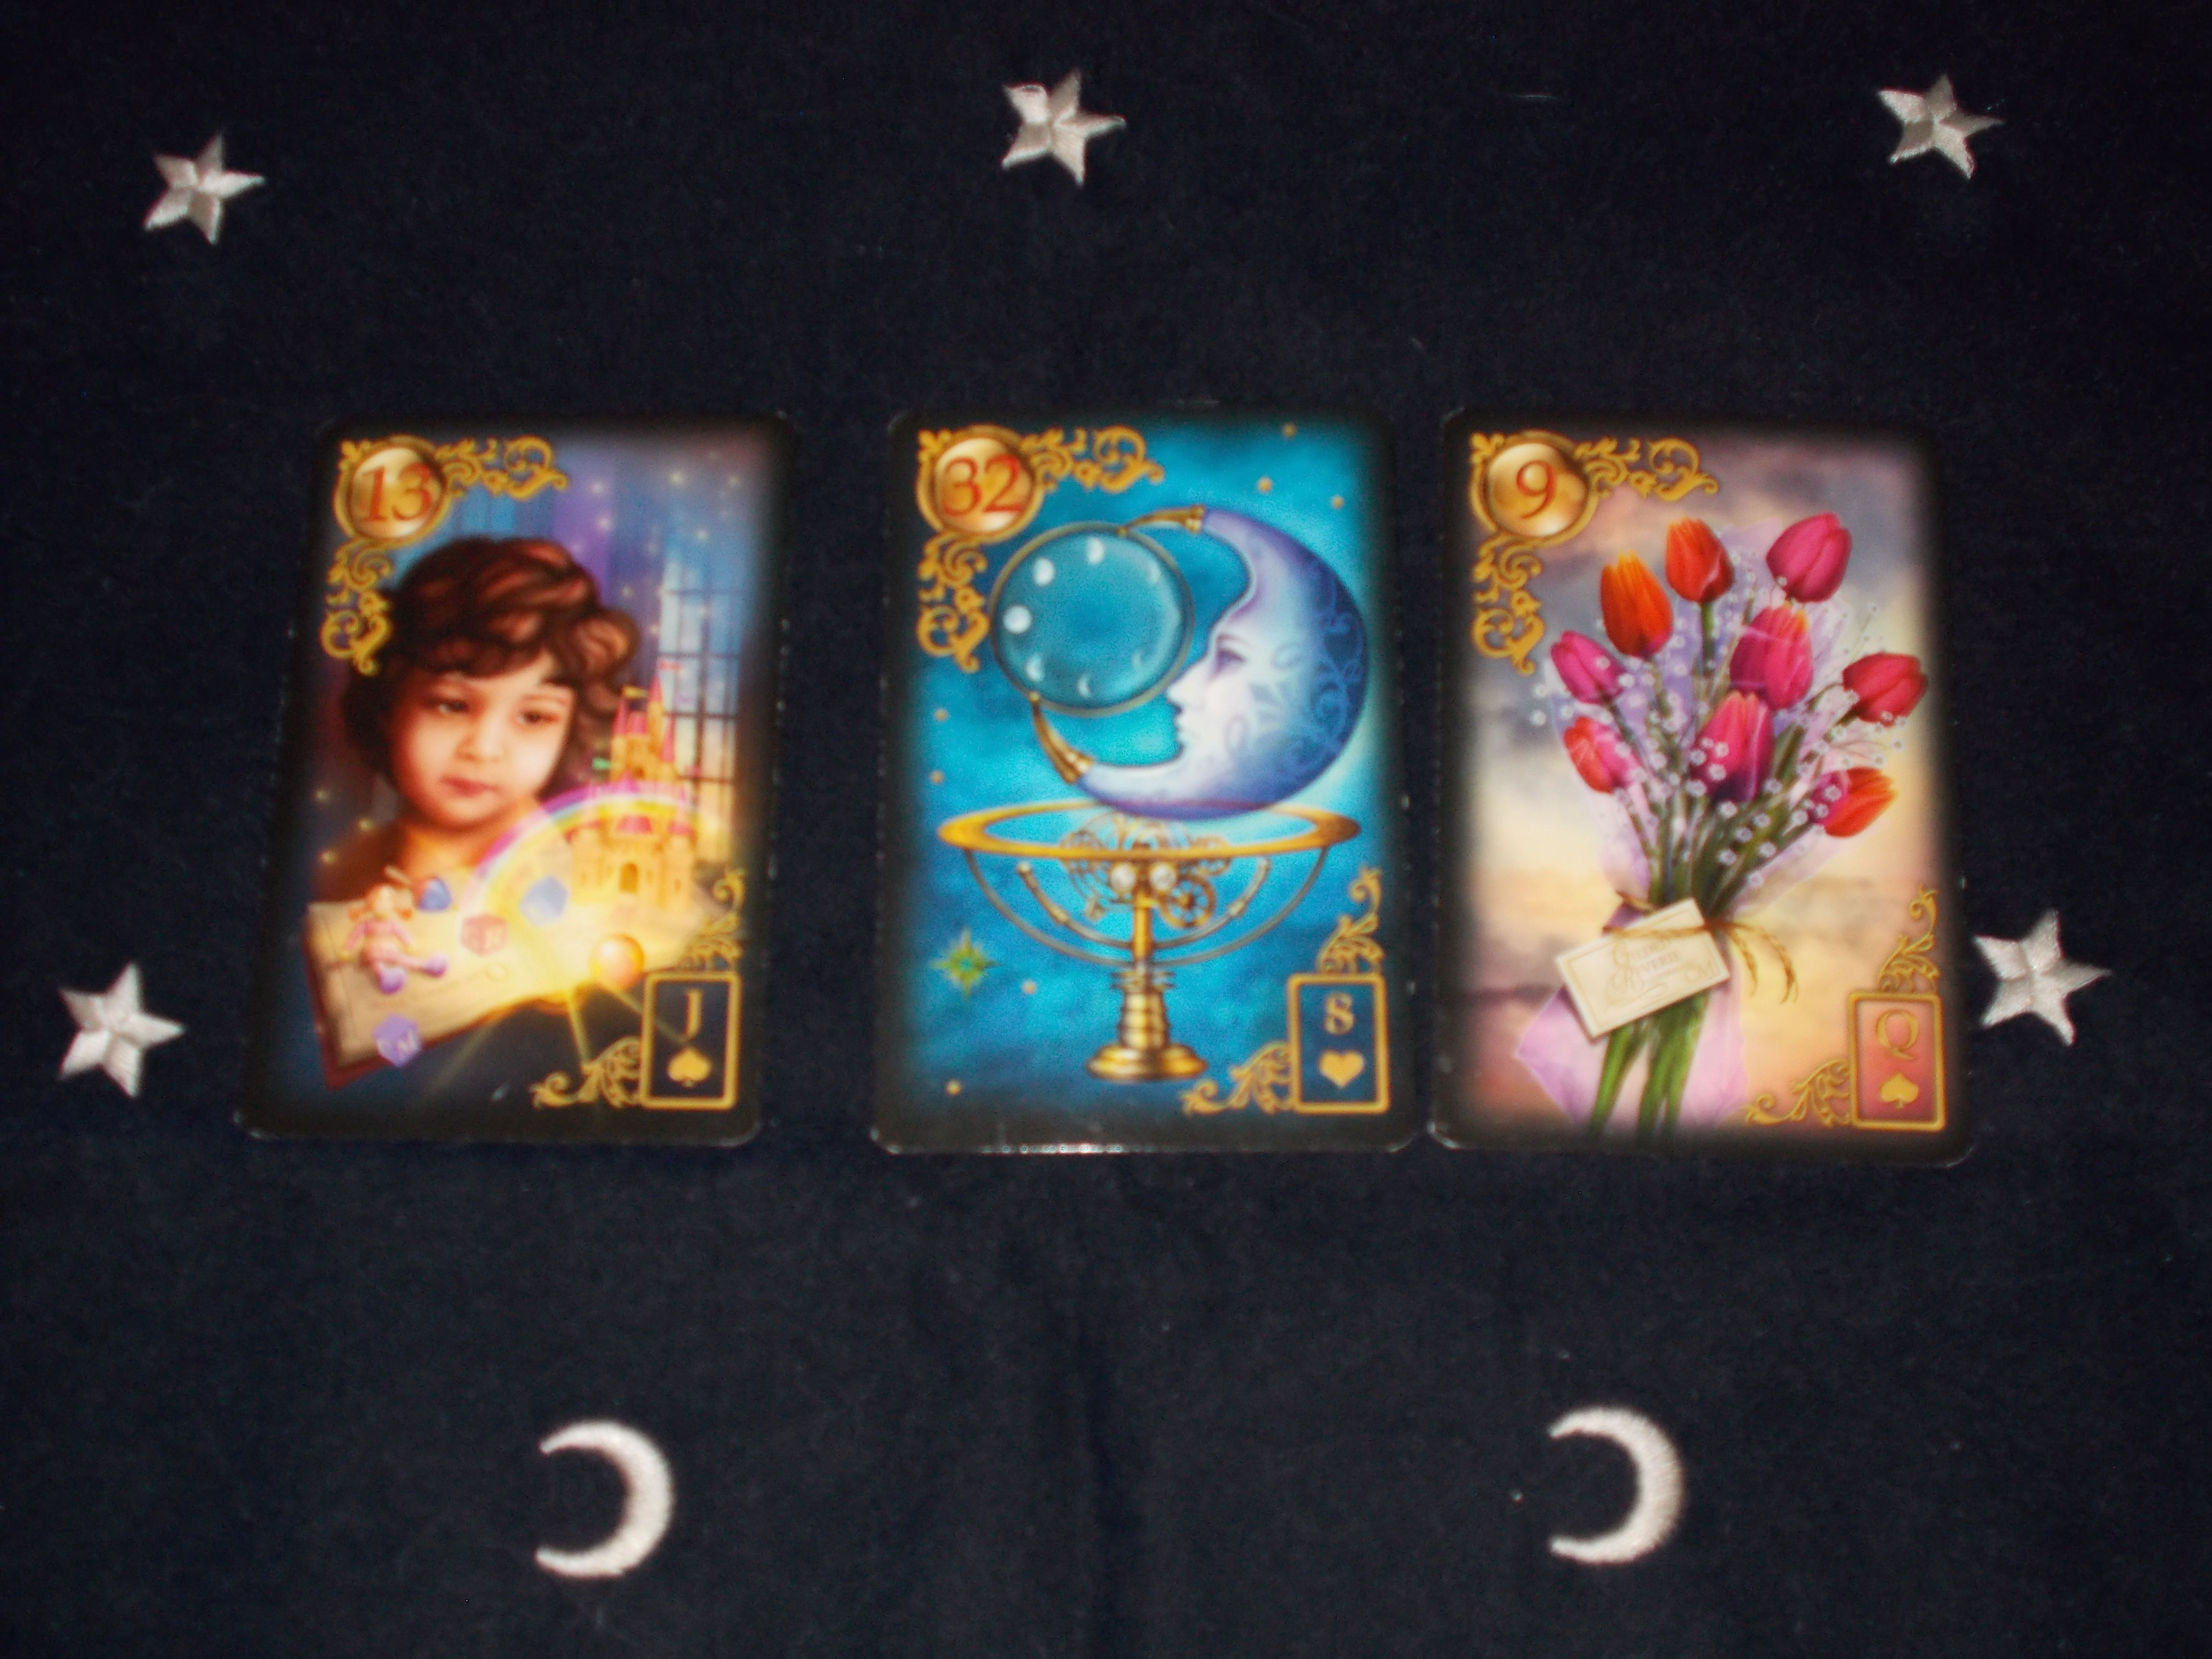 Group Reading for 4-30-16  Gilded Reverie Lenormand  CHILD + MOON + BOUQUET: Message for the day  New beginnings and recognition for hard work will lead to happiness, calm, and contentment.  Click here www.kcrcounseling.com for an insightful session with Kathleen Robinson.